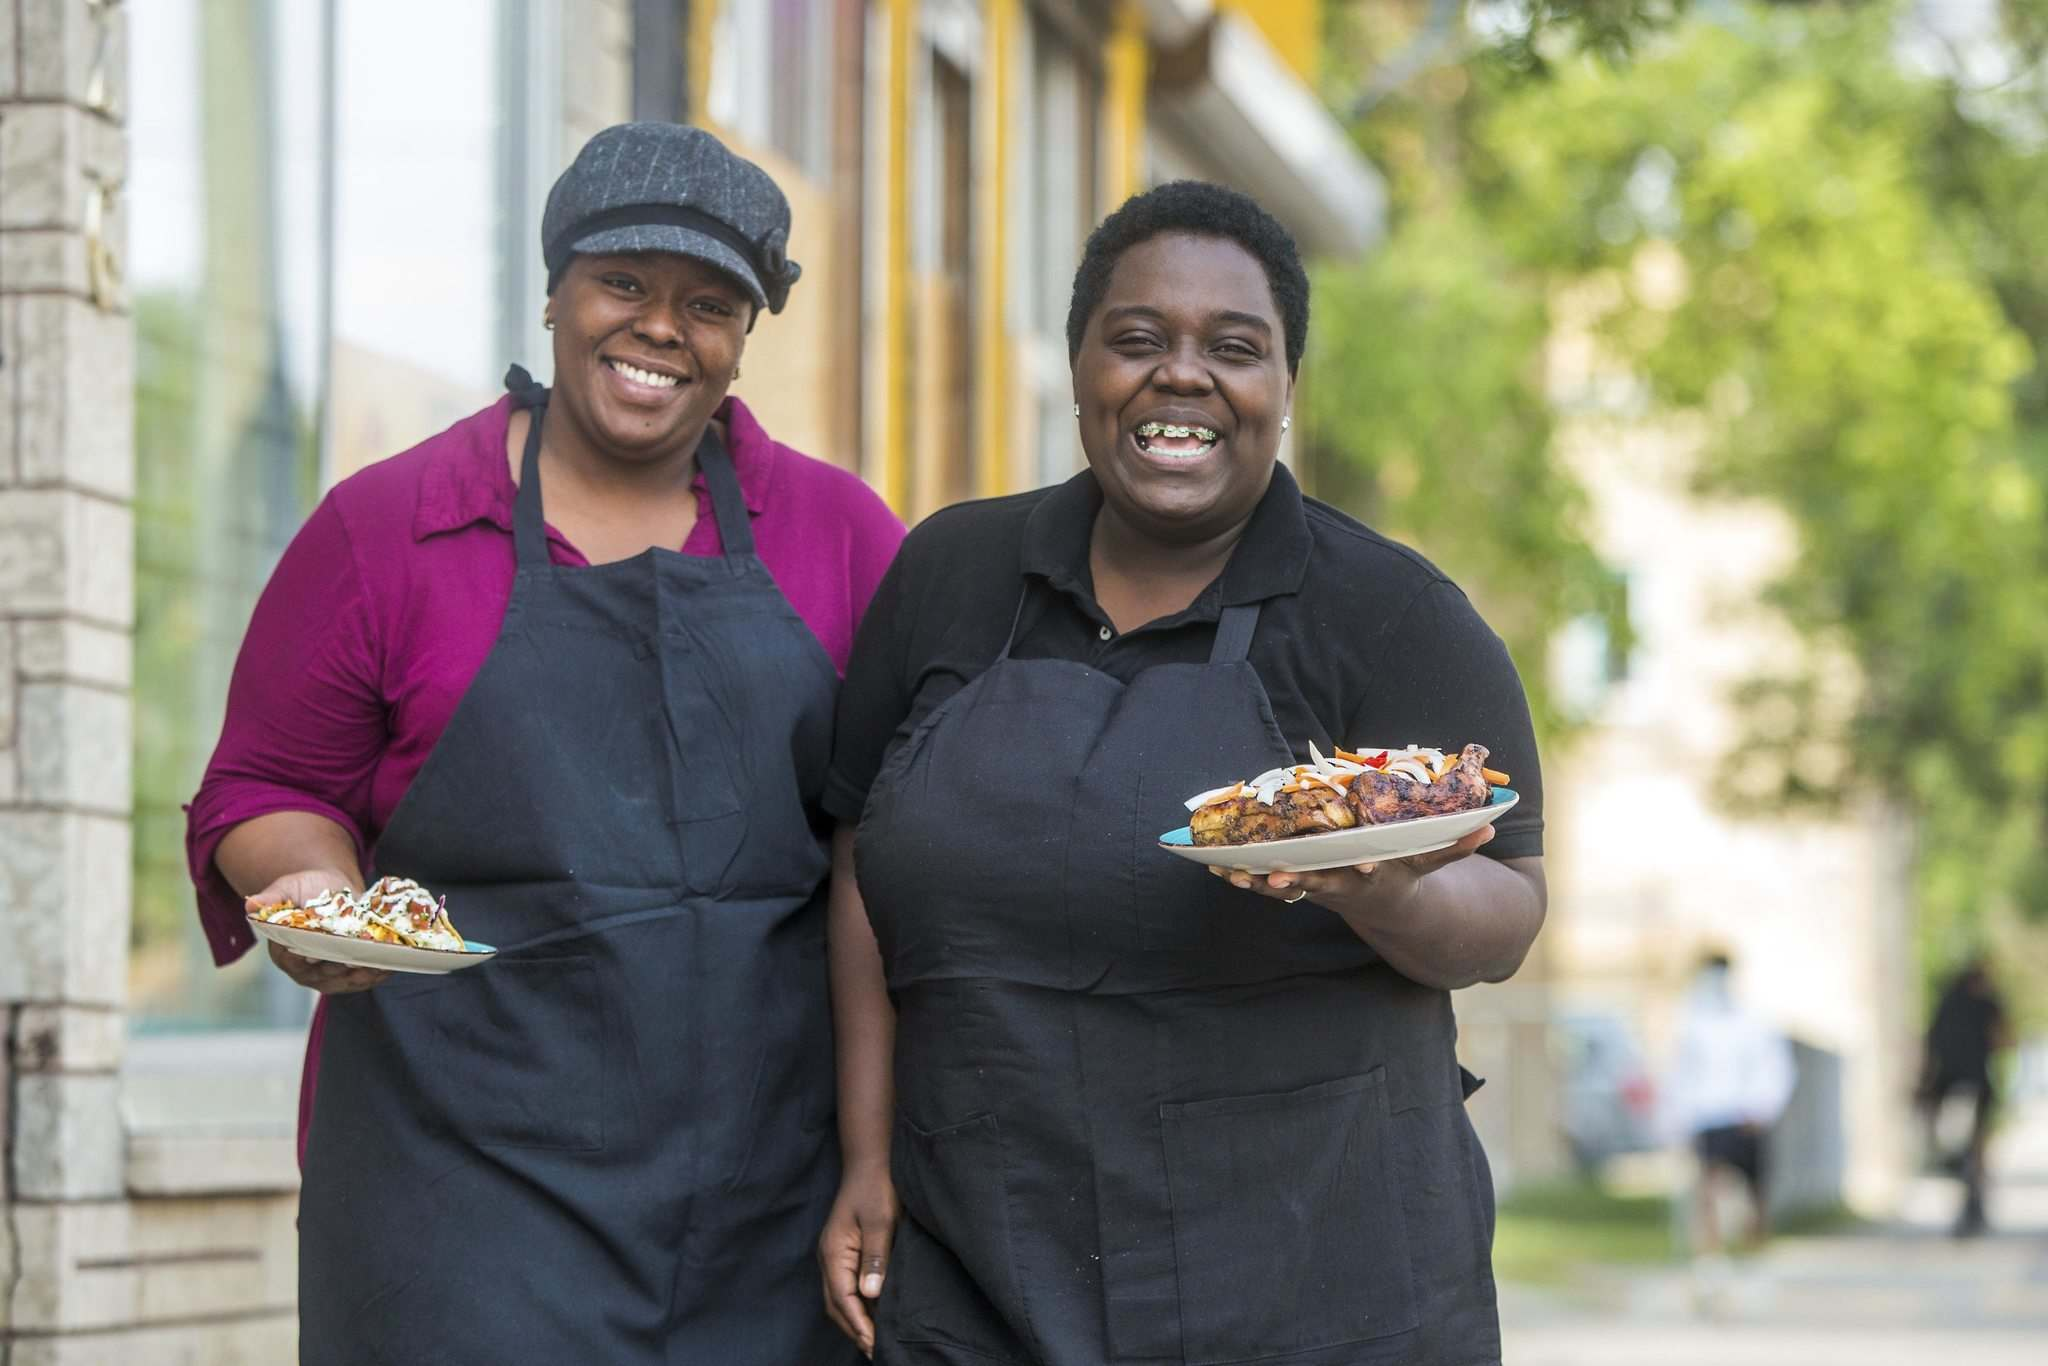 Deidré Coleman (left) and Patrice Gilman are taking part in this month's Black History Manitoba block party, dishing up Caribbean food from their West End restaurant. (Mikaela MacKenzie / Winnipeg Free Press)</p>